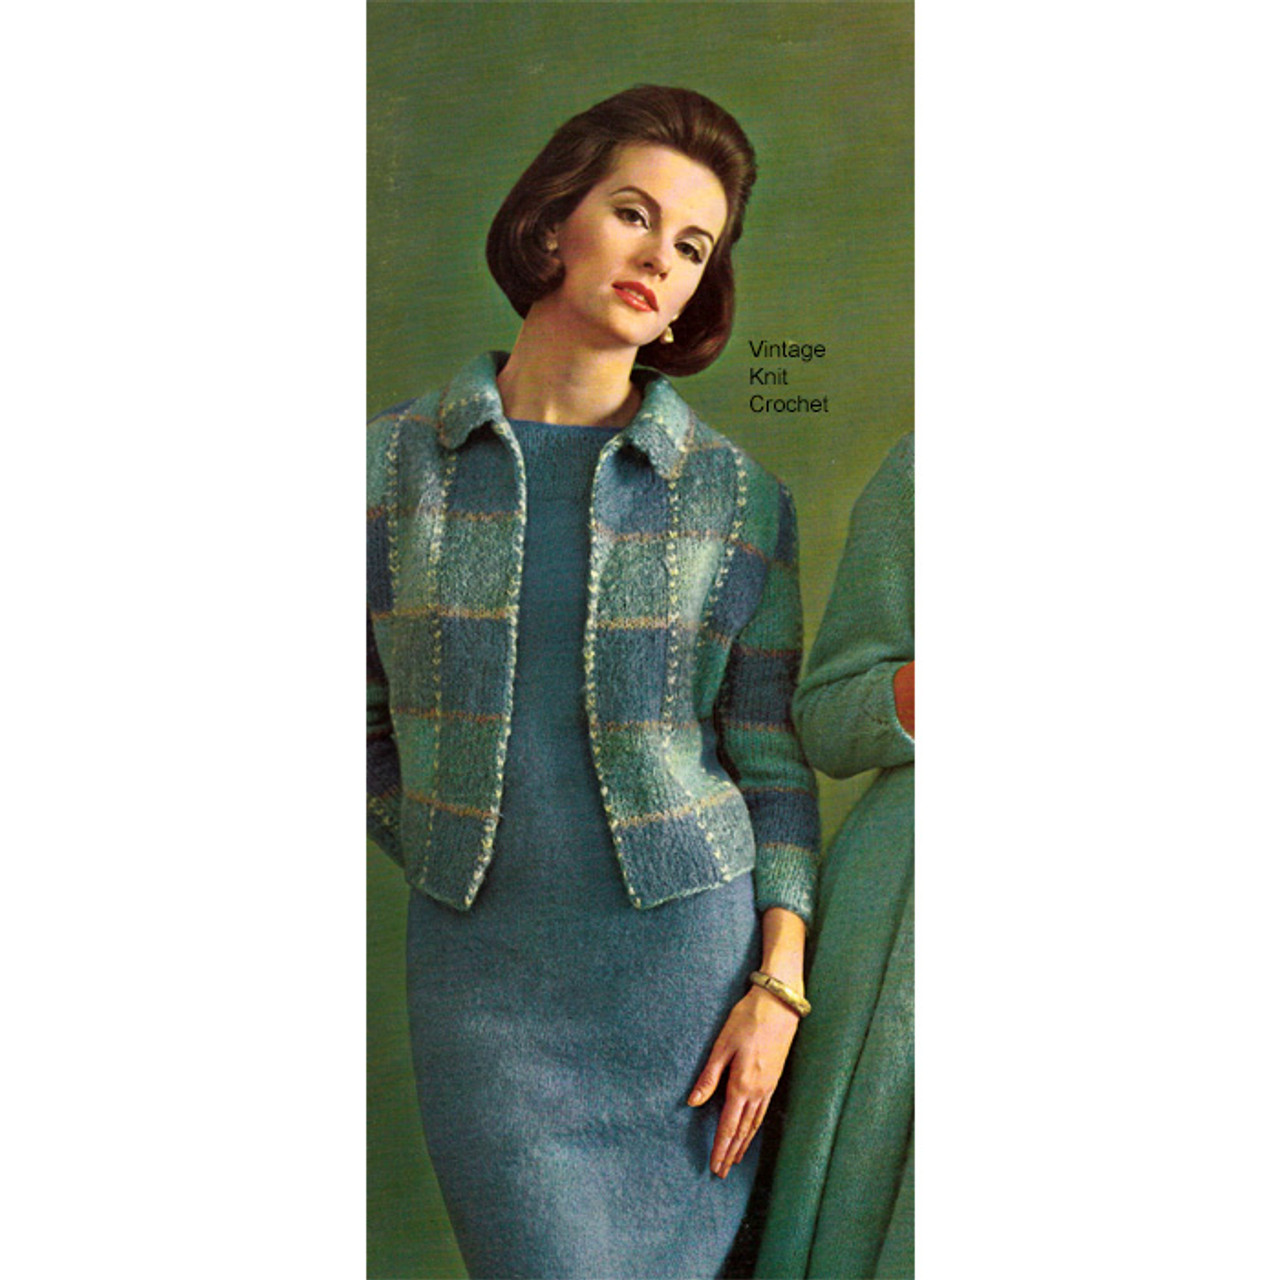 Mohair Knit Dress and Jacket Pattern, Two Piece Suit